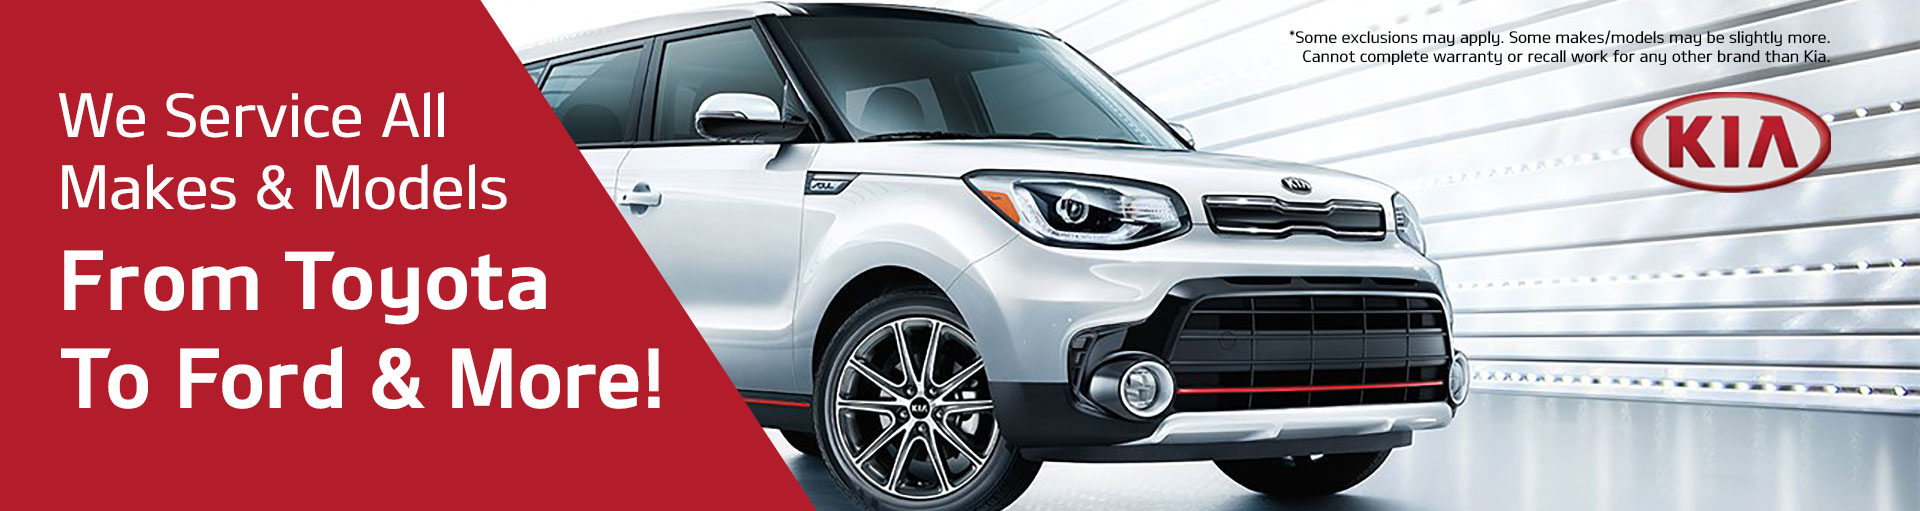 Hagerstown Kia Service All Makes & Models